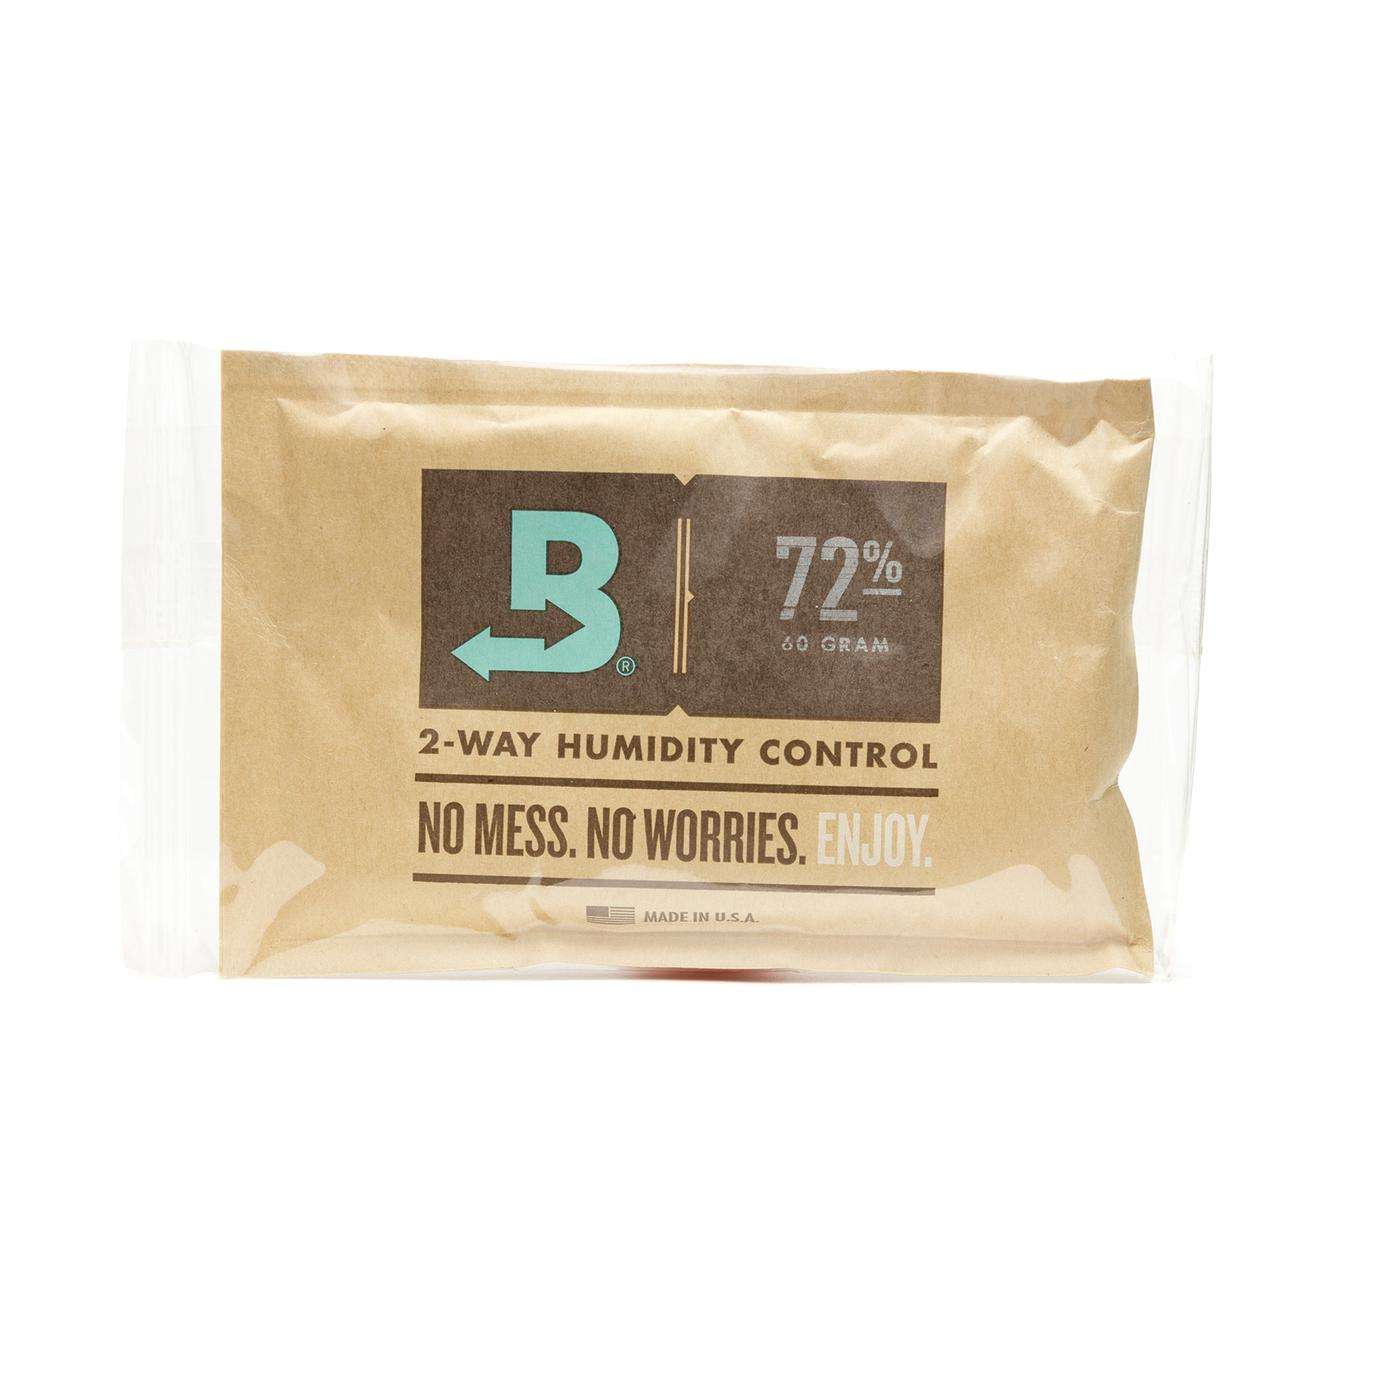 Boveda Humipack 72 Prozent